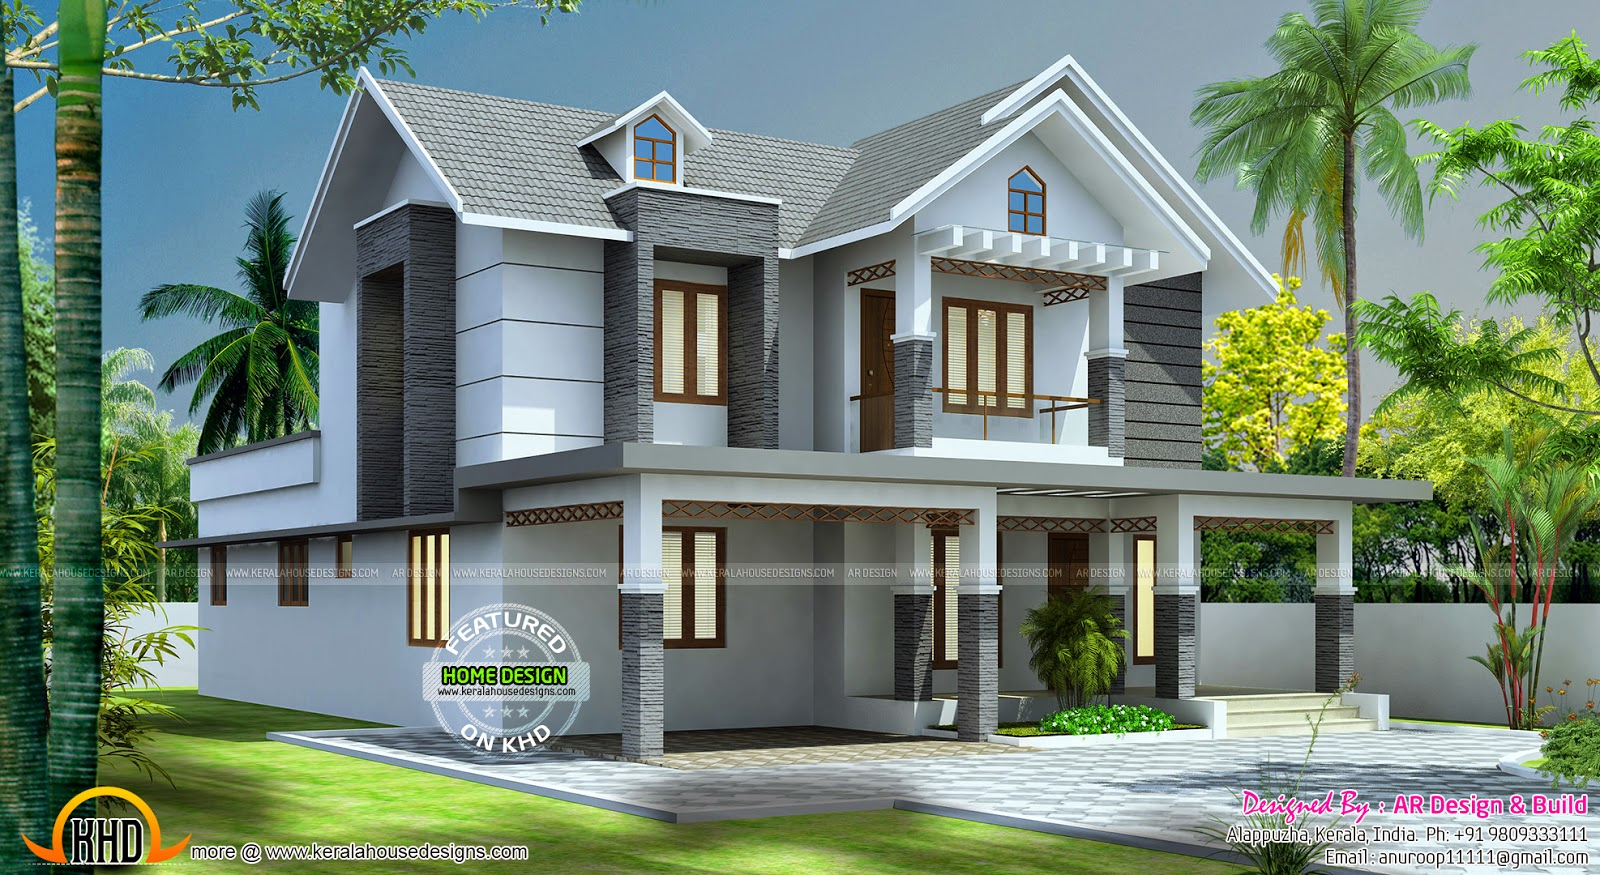 Beautiful 2545 sq ft home design kerala home design and for Beautiful house design images